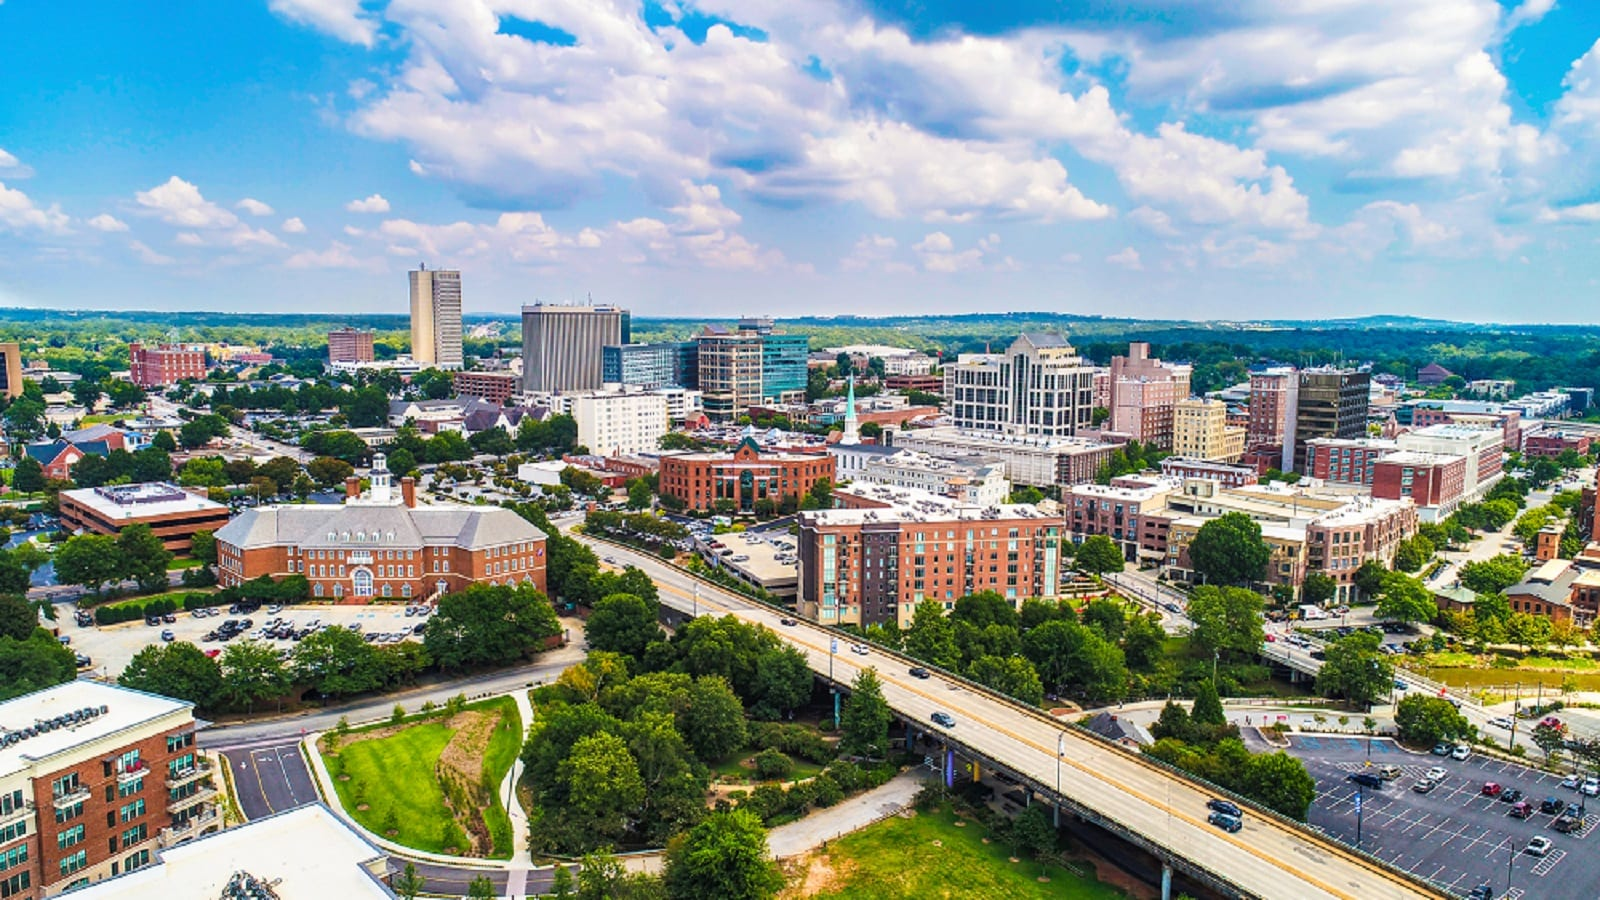 Aerial Photo Of Downtown Greenville, South Carolina